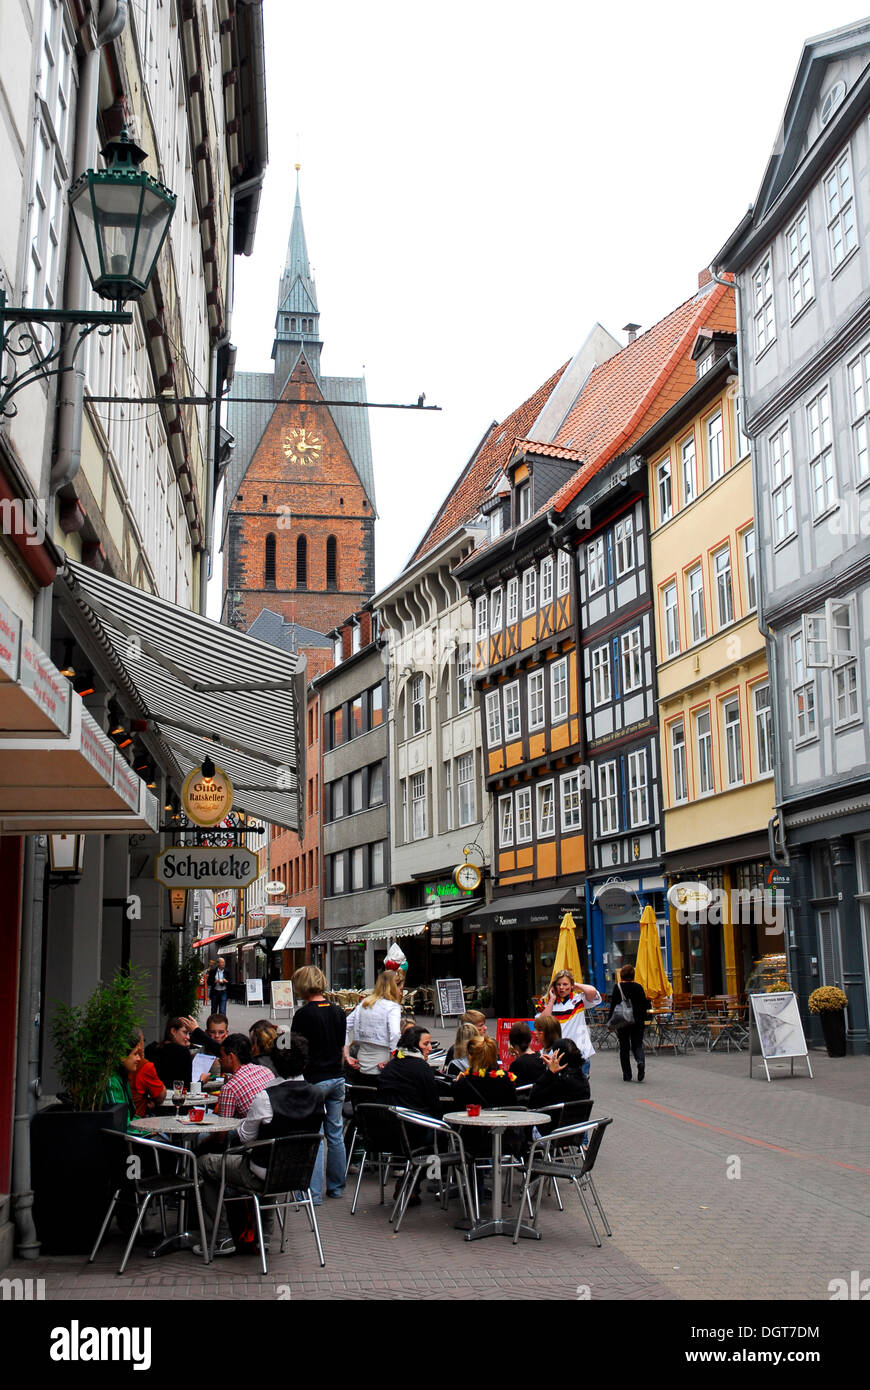 Cafe and bar in the old town, half-timbered houses in the Kramerstrasse street, in the back the Marktkirche church, Hannover - Stock Image